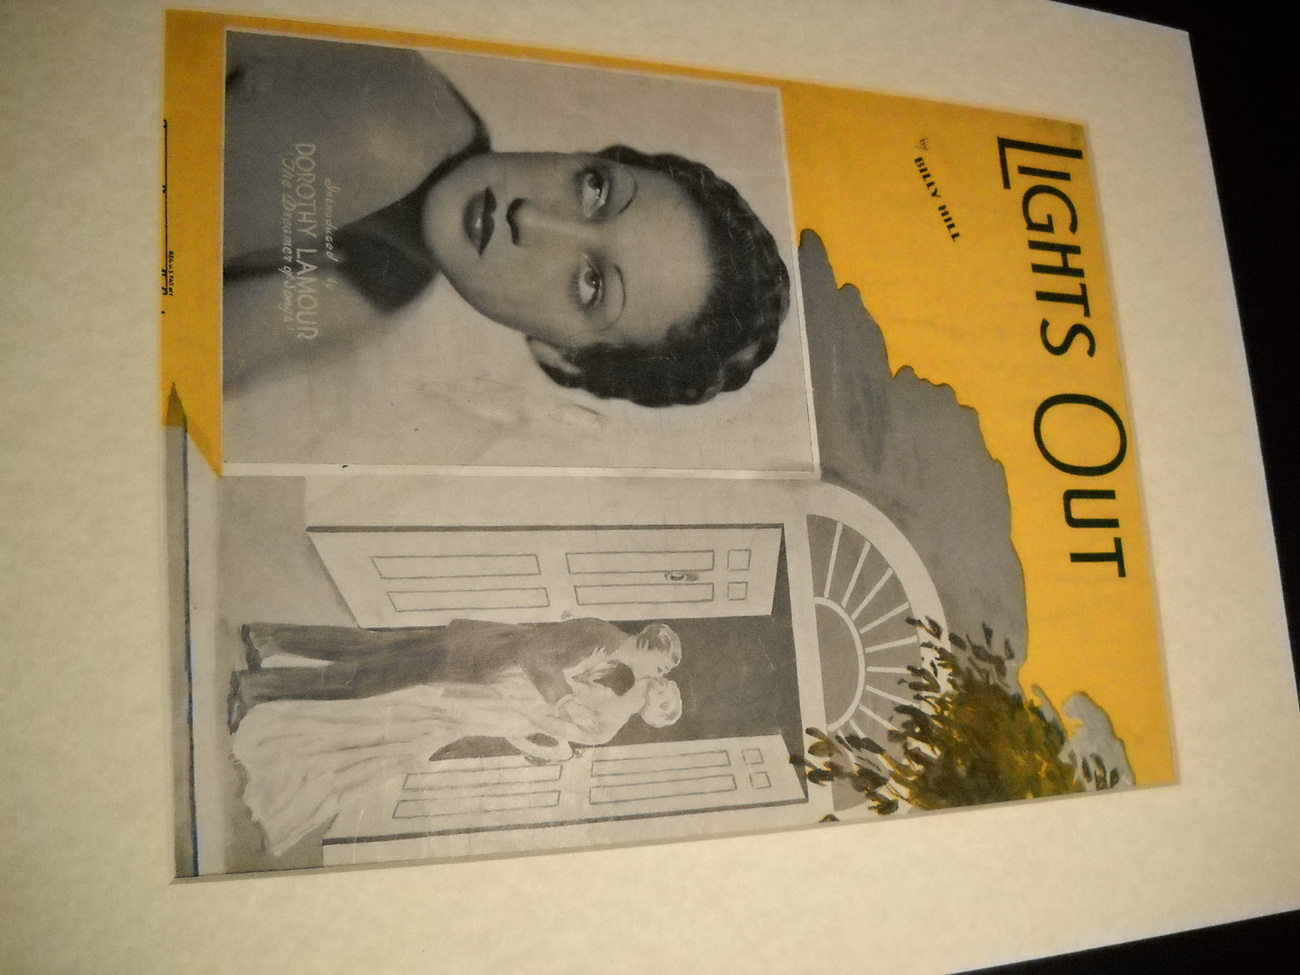 Sheet_music_lights_out_dorothy_lamour_billy_hill_1935_shapiro_bernstein_08